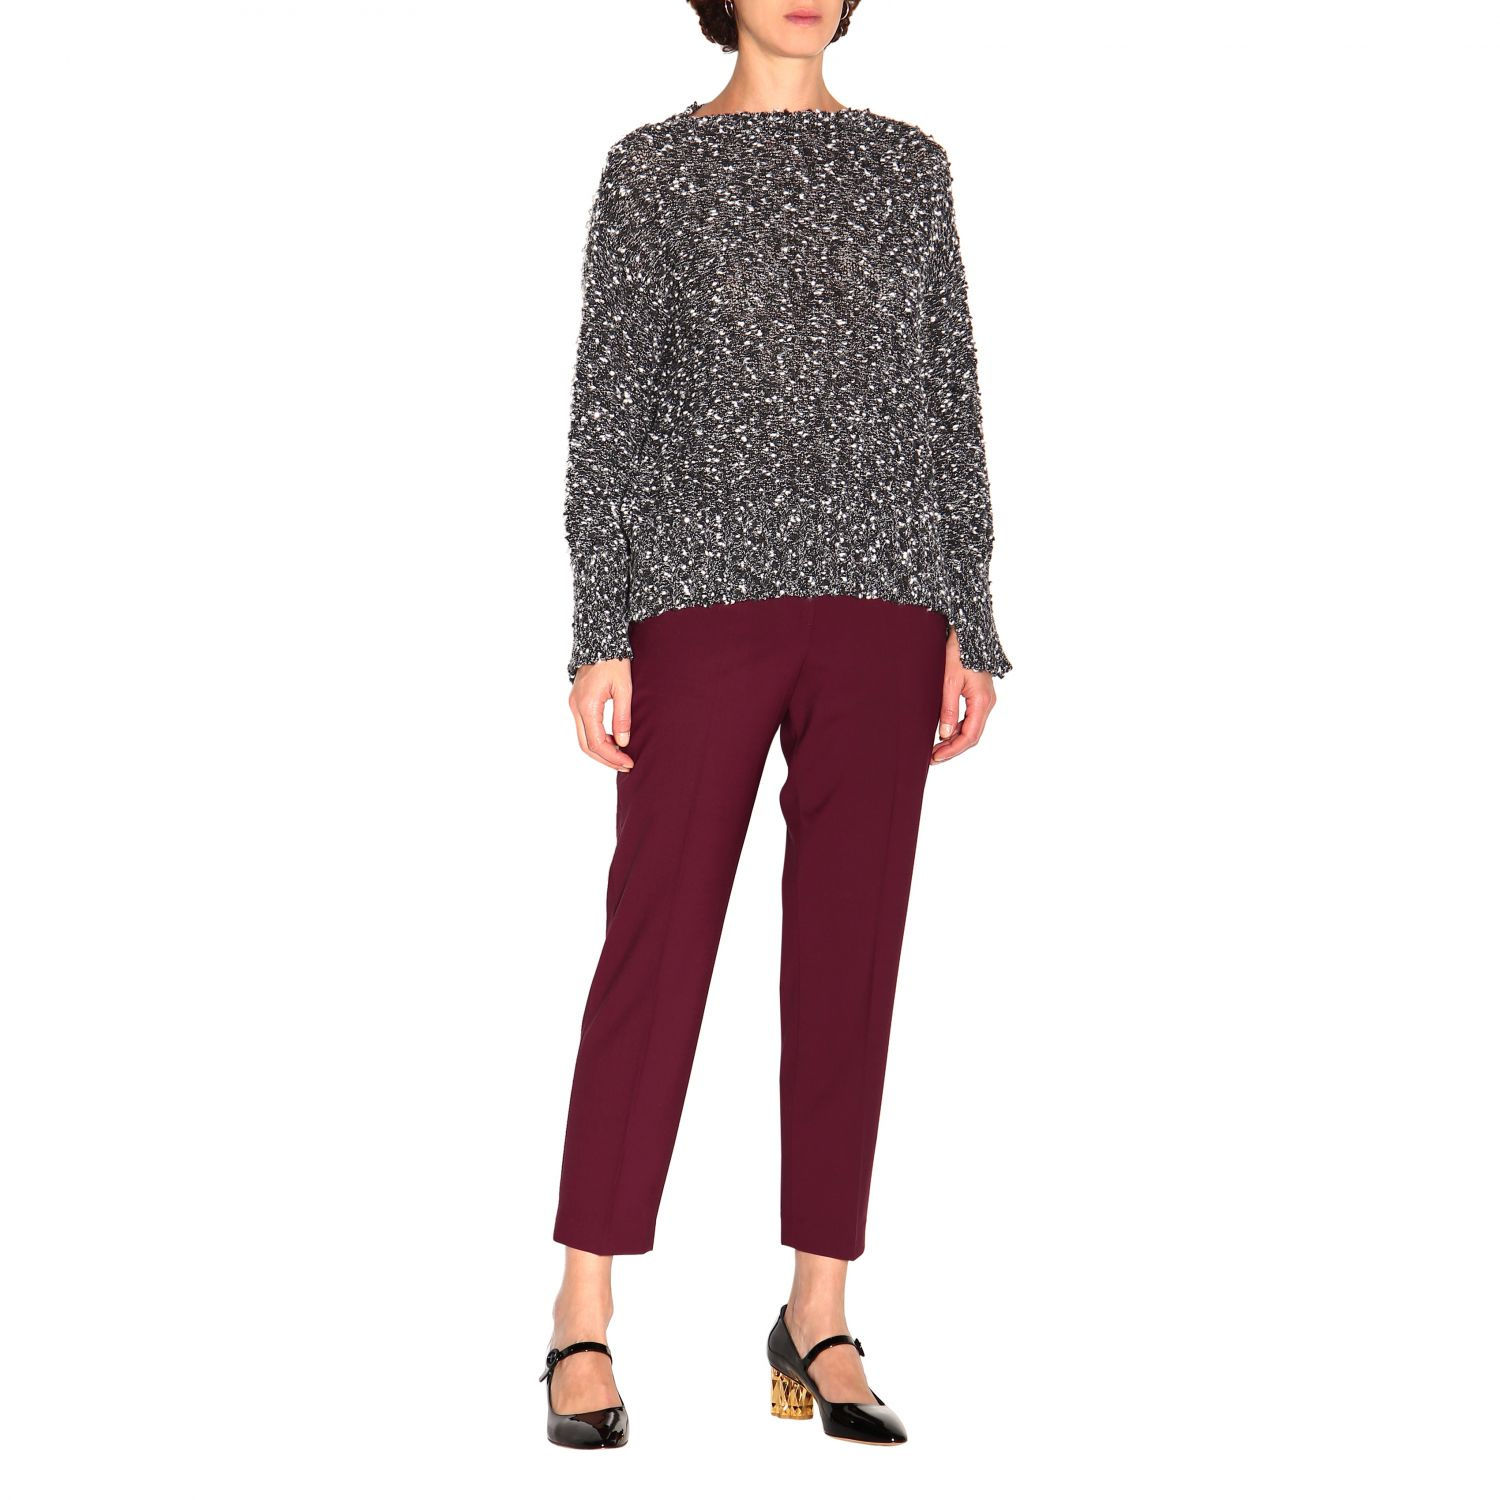 Trousers women Theory burgundy 2